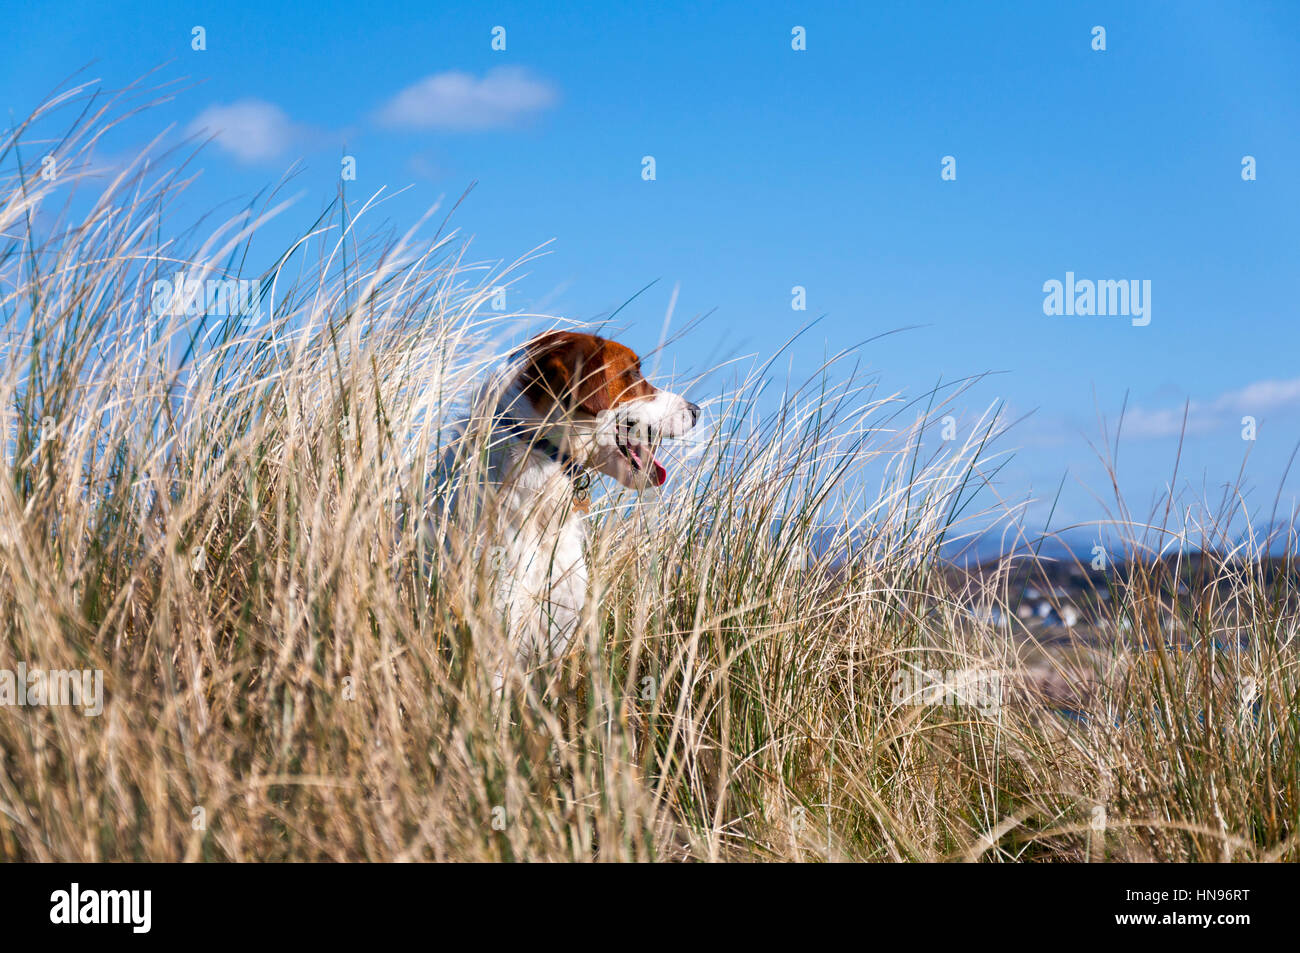 Dog on the beach with marram grass - Stock Image